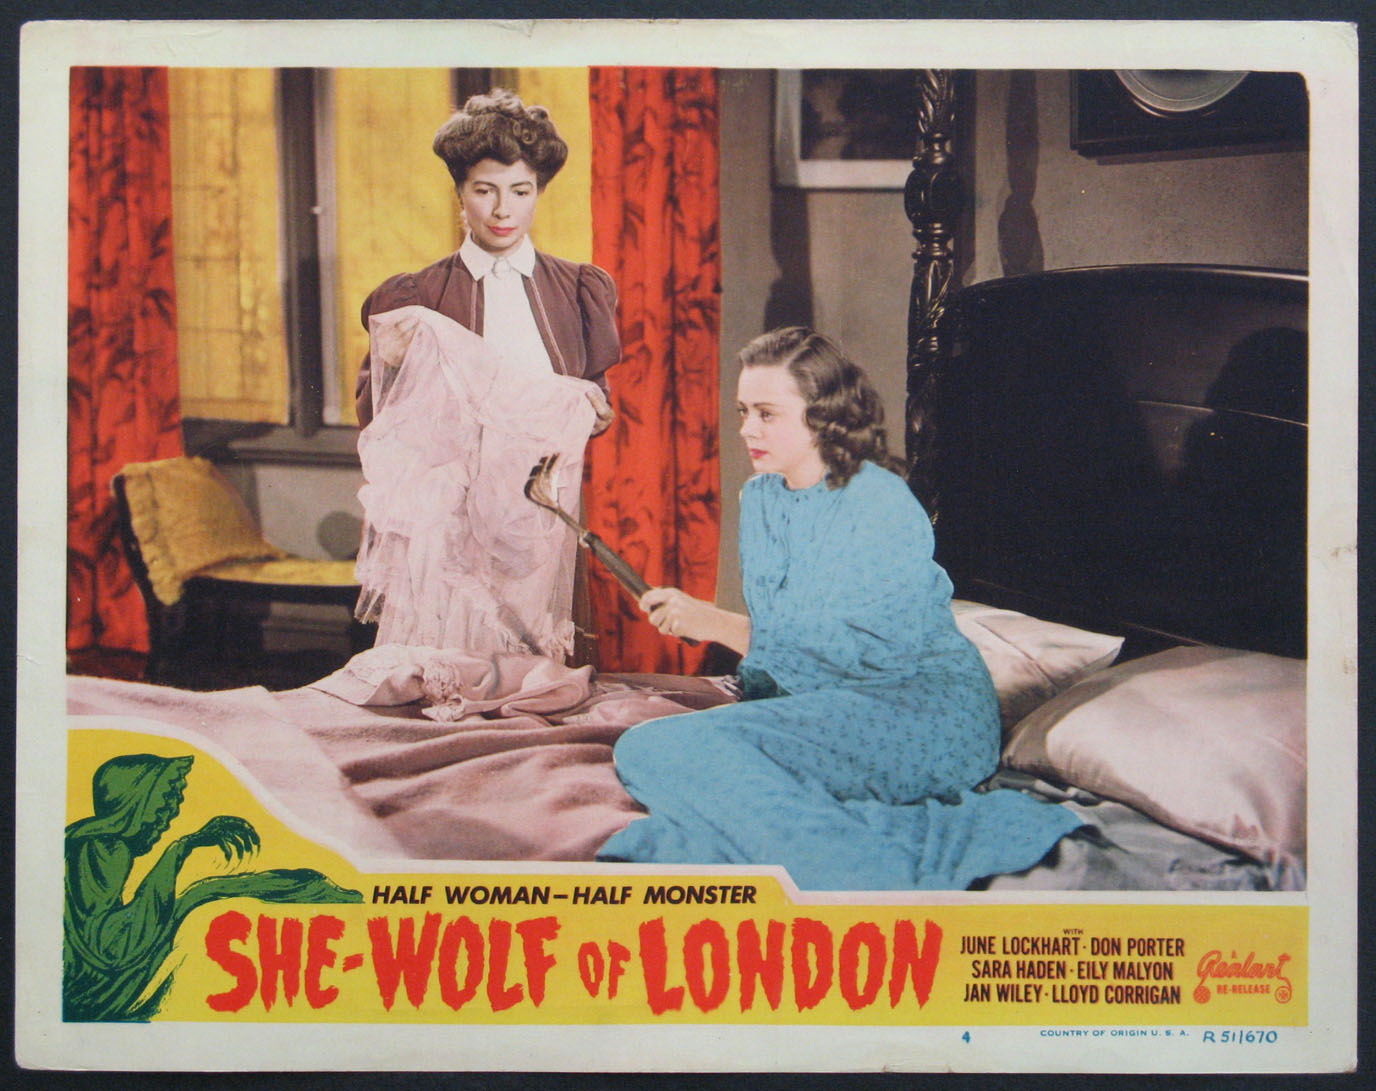 SHE-WOLF OF LONDON @ FilmPosters.com